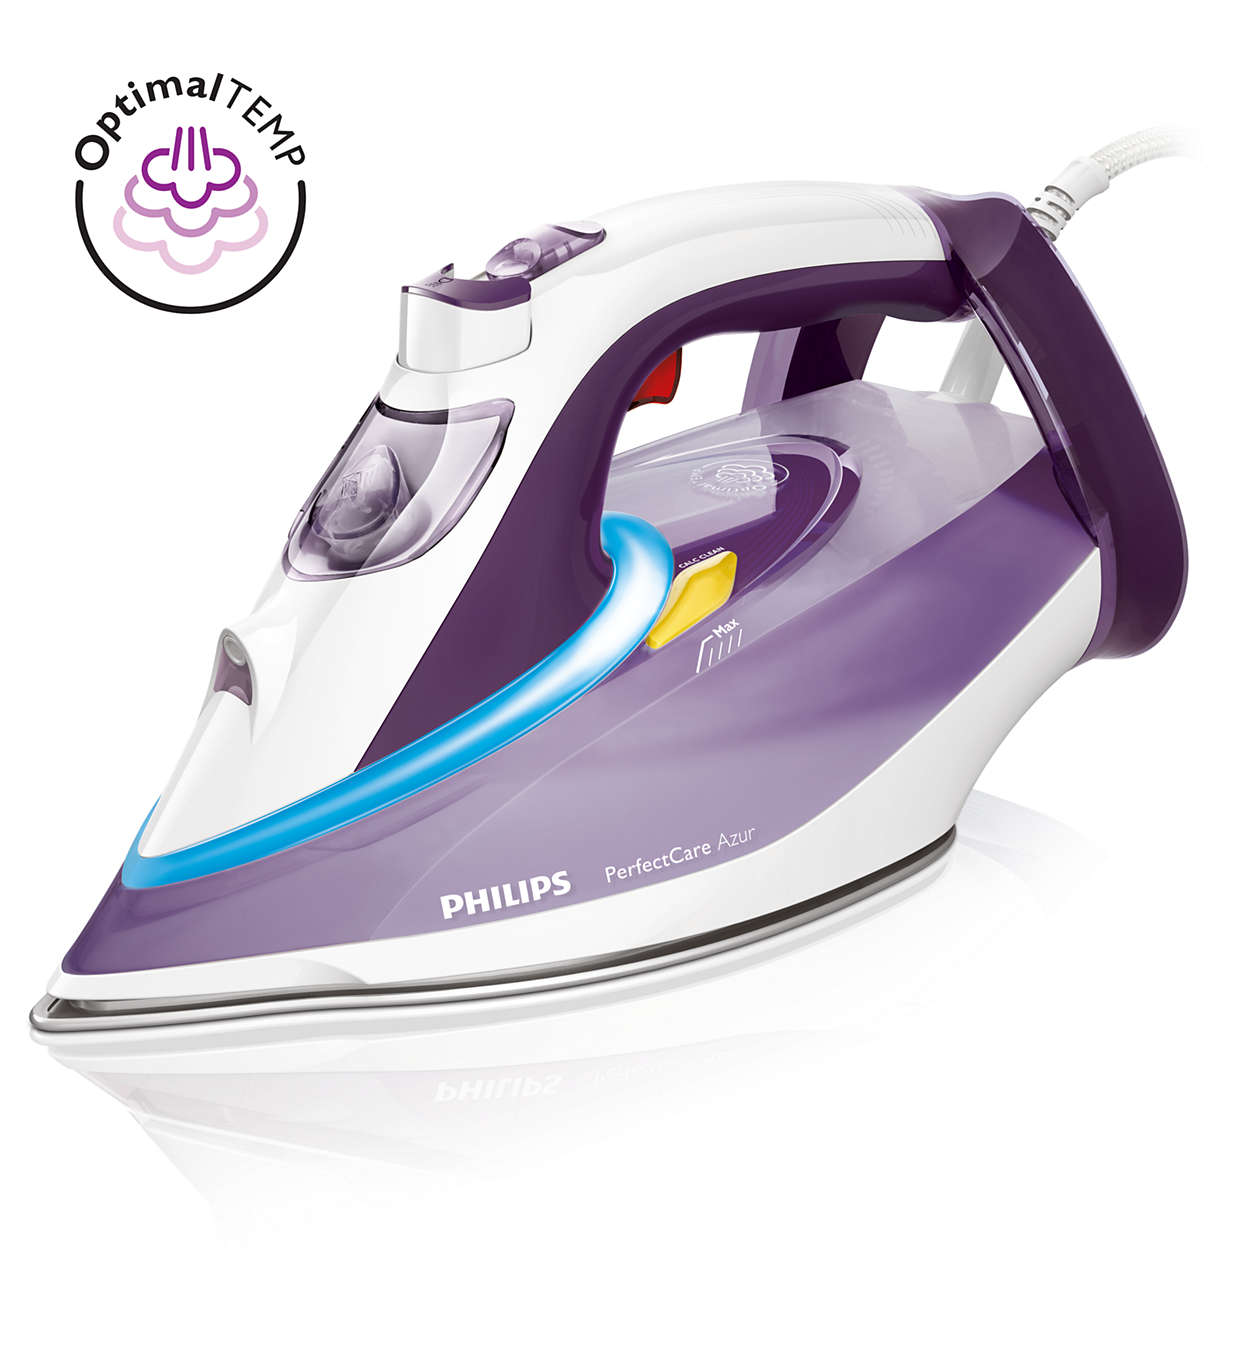 Carefree ironing, no setting required